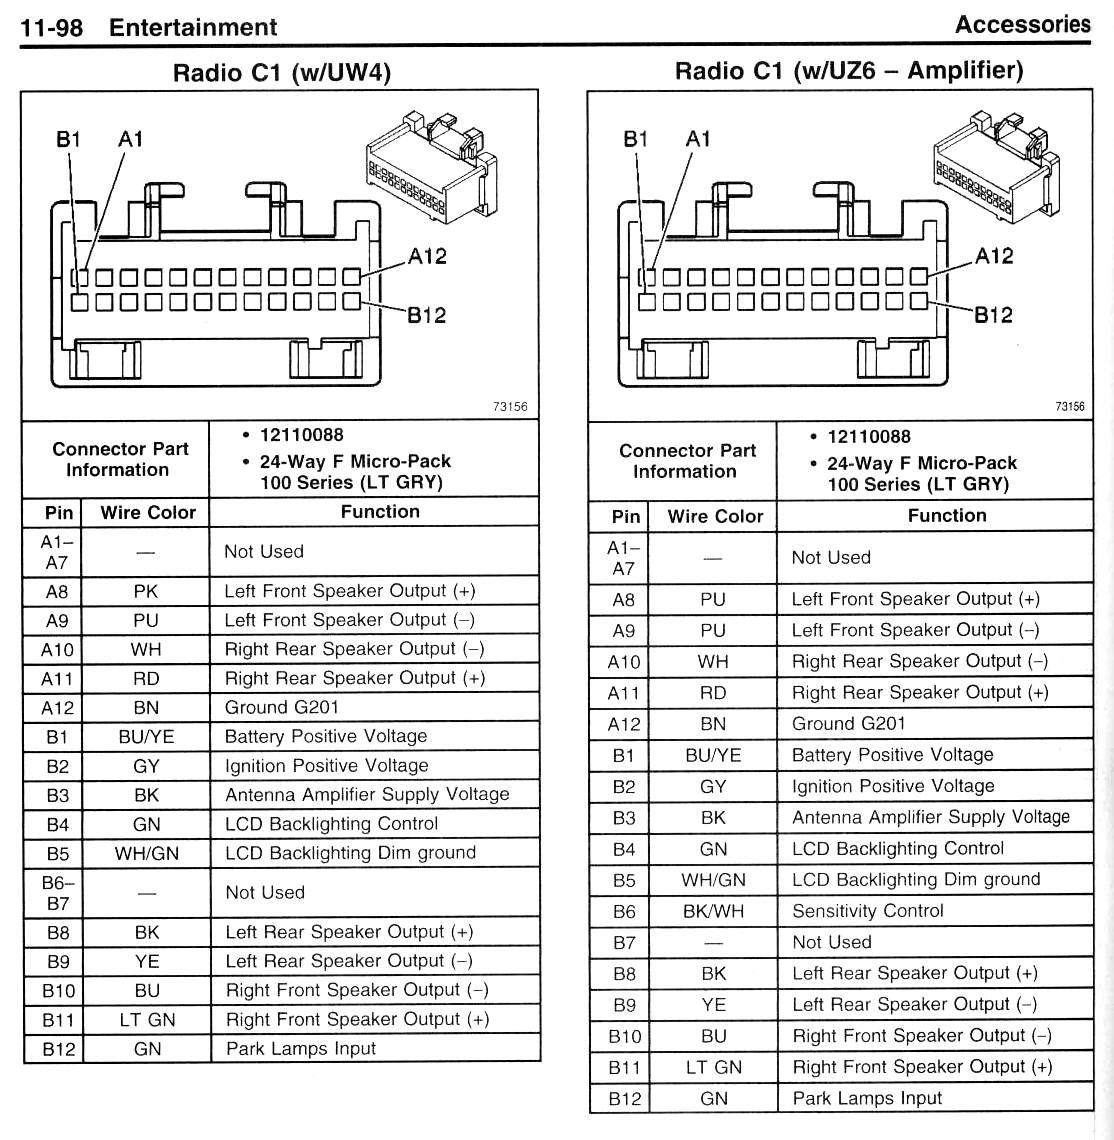 2006 Pontiac Grand Prix Parts Diagram